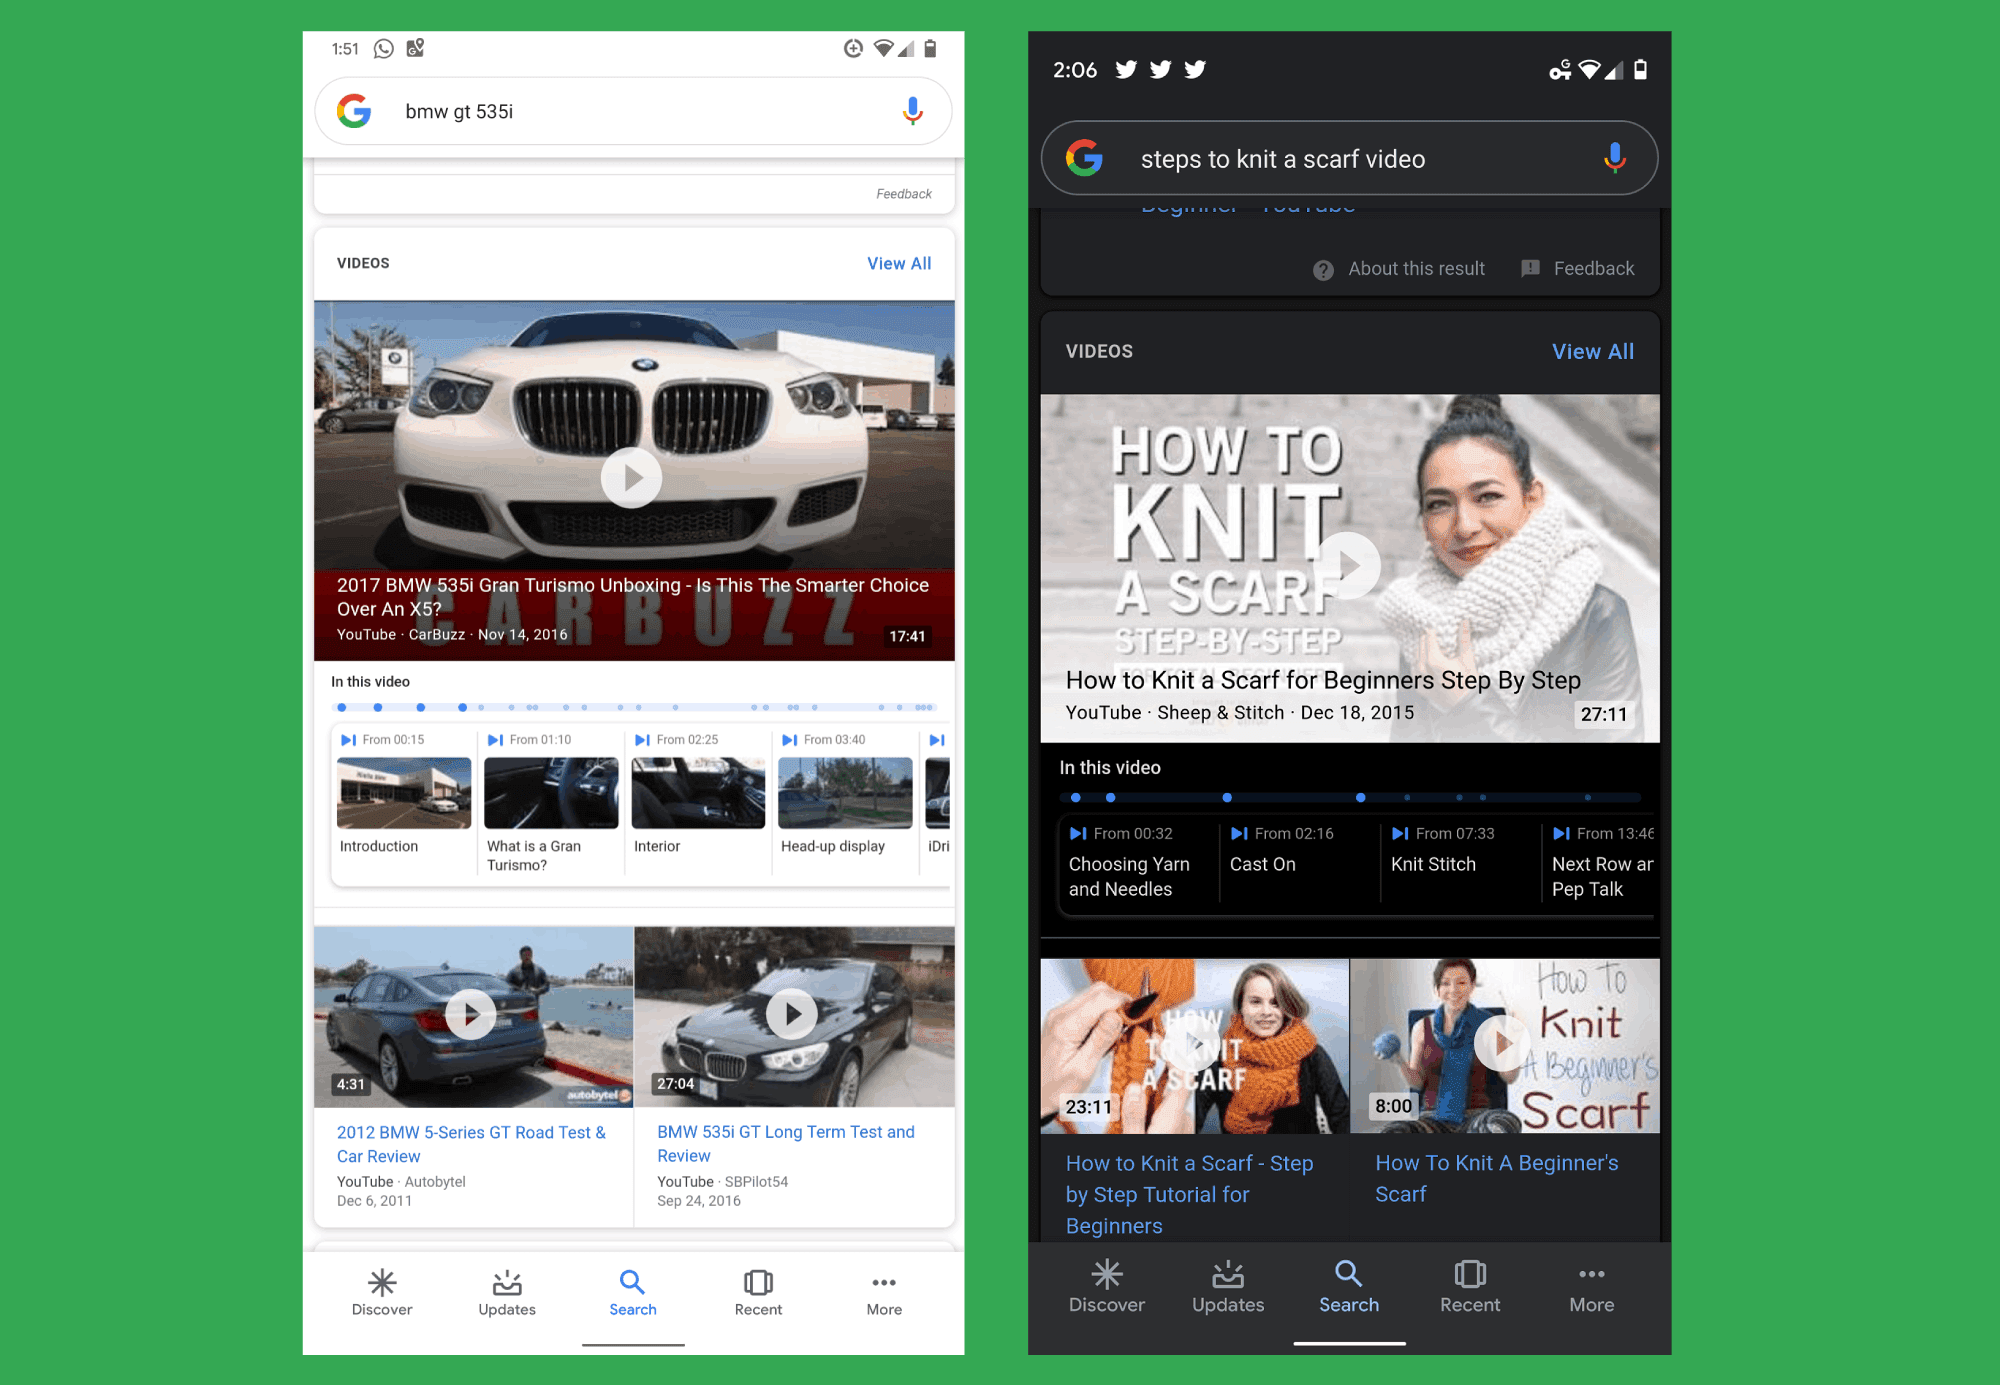 Google mobile app shows 'in this video' bookmarks for YouTube videos search results